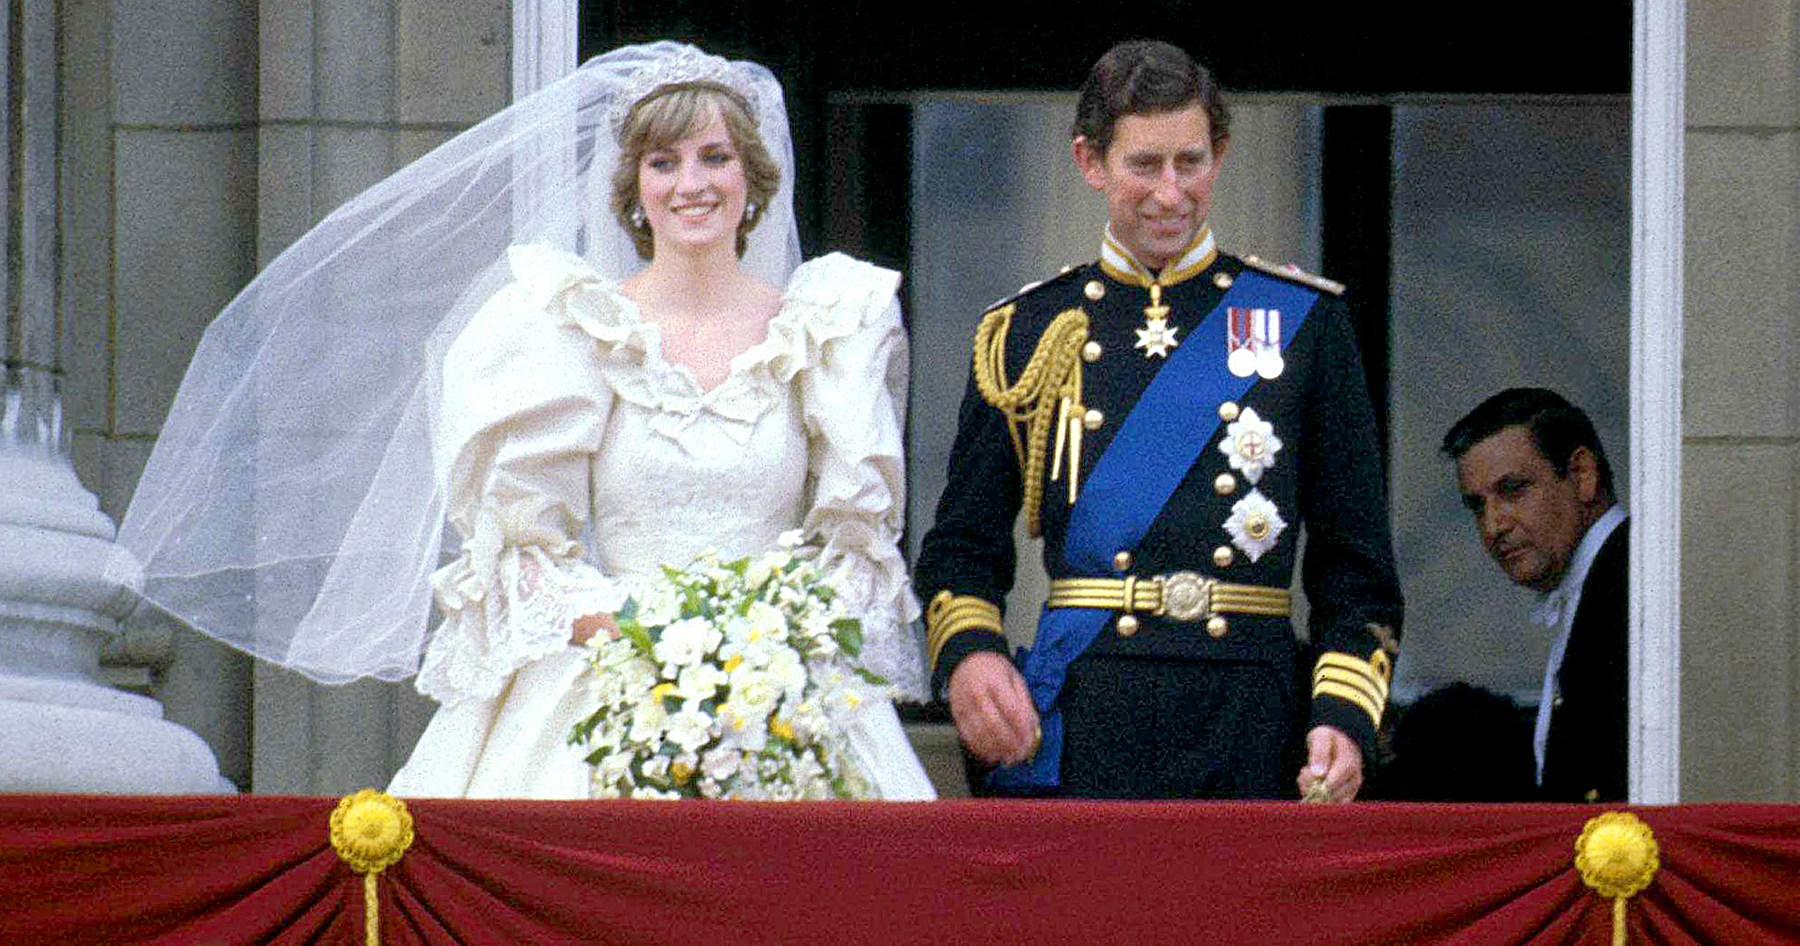 Prince Charles 'Desperately' Wanted to Get Out of Marrying Princess Diana, New Book Claims